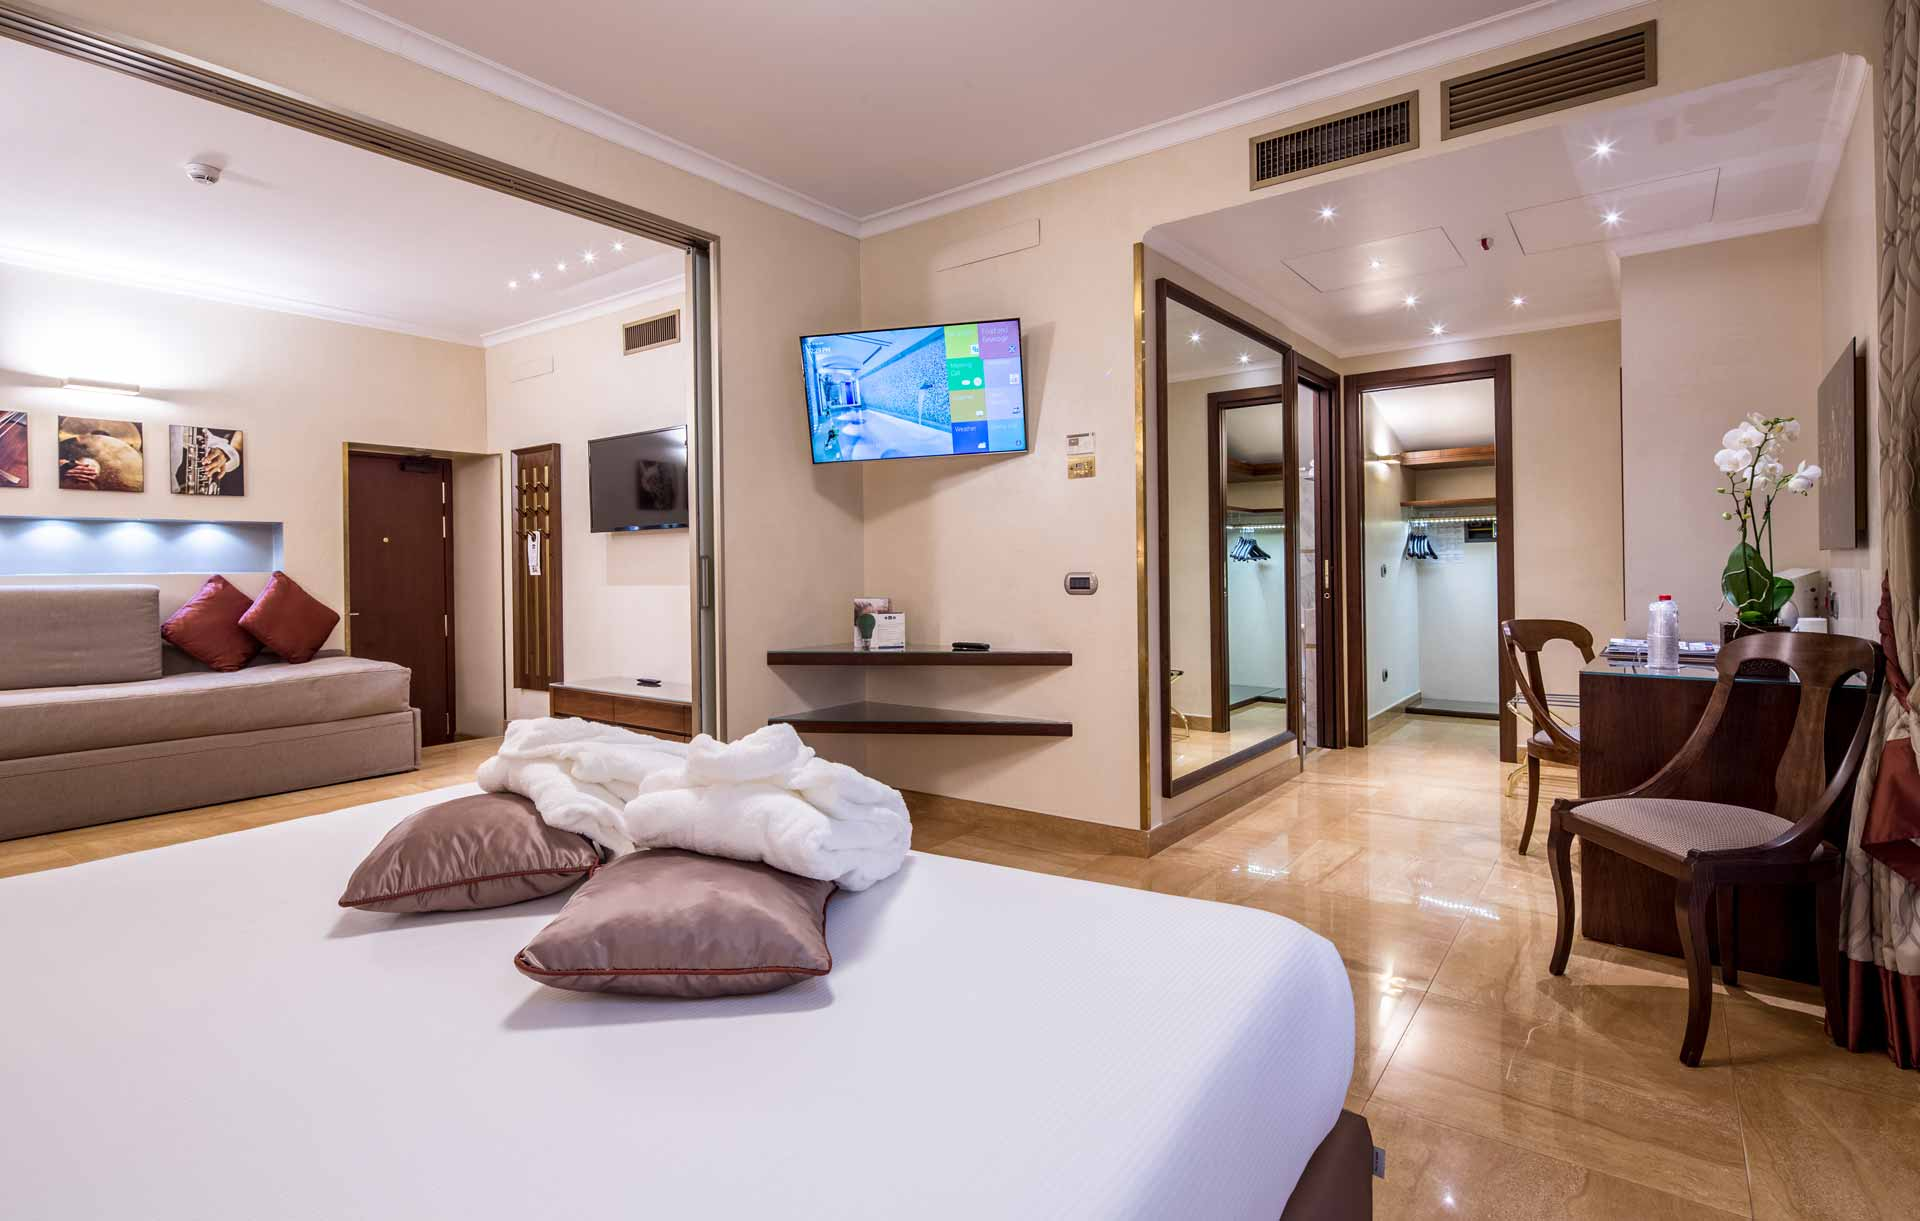 Hotel with Suites in Milan  Enjoy our Luxury Suites in the Center of Milan